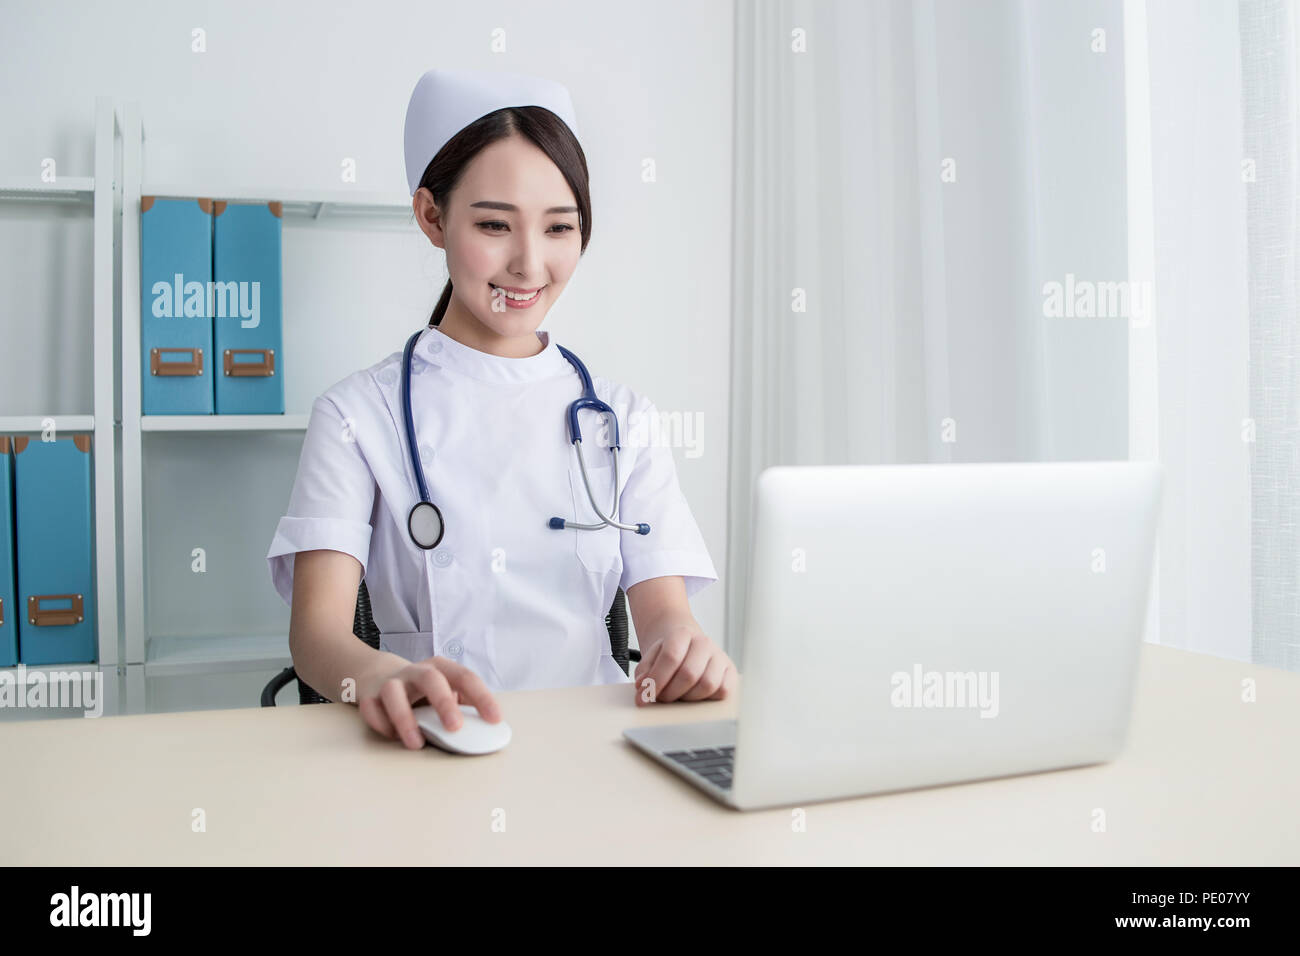 Side view of young female nurse using computer at desk in clinic - Stock Image